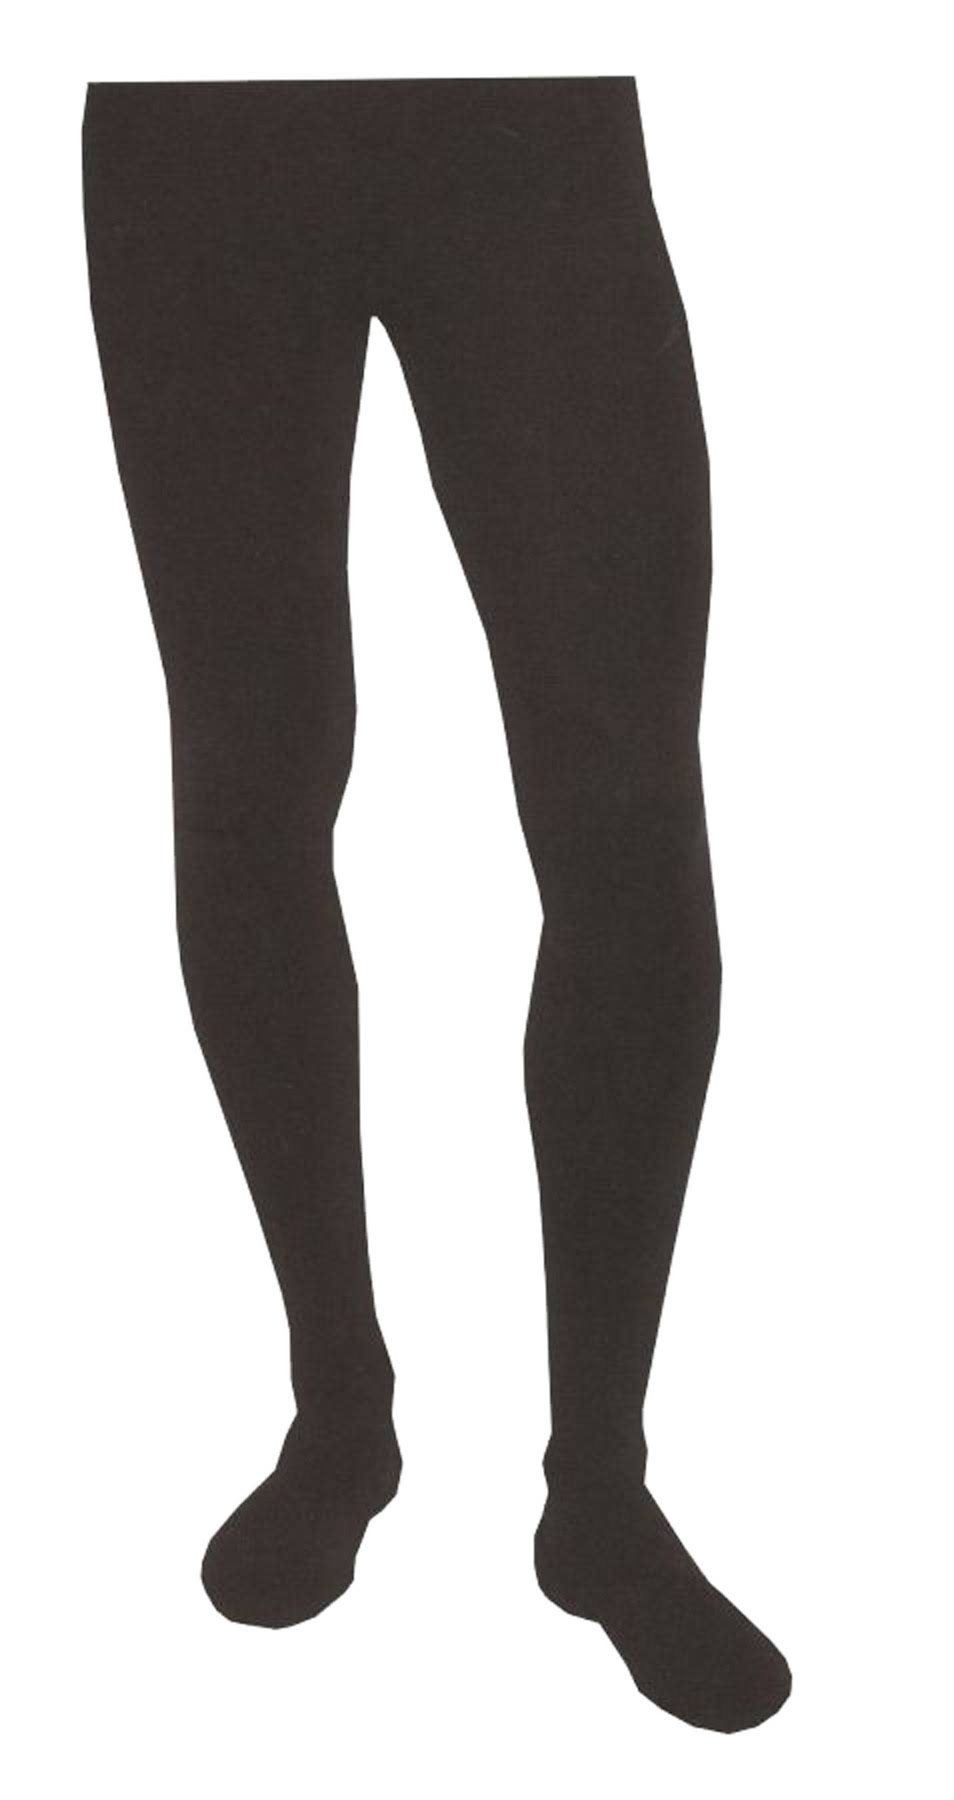 Capezio Men's Knit Footed Tights - Black, X-Large